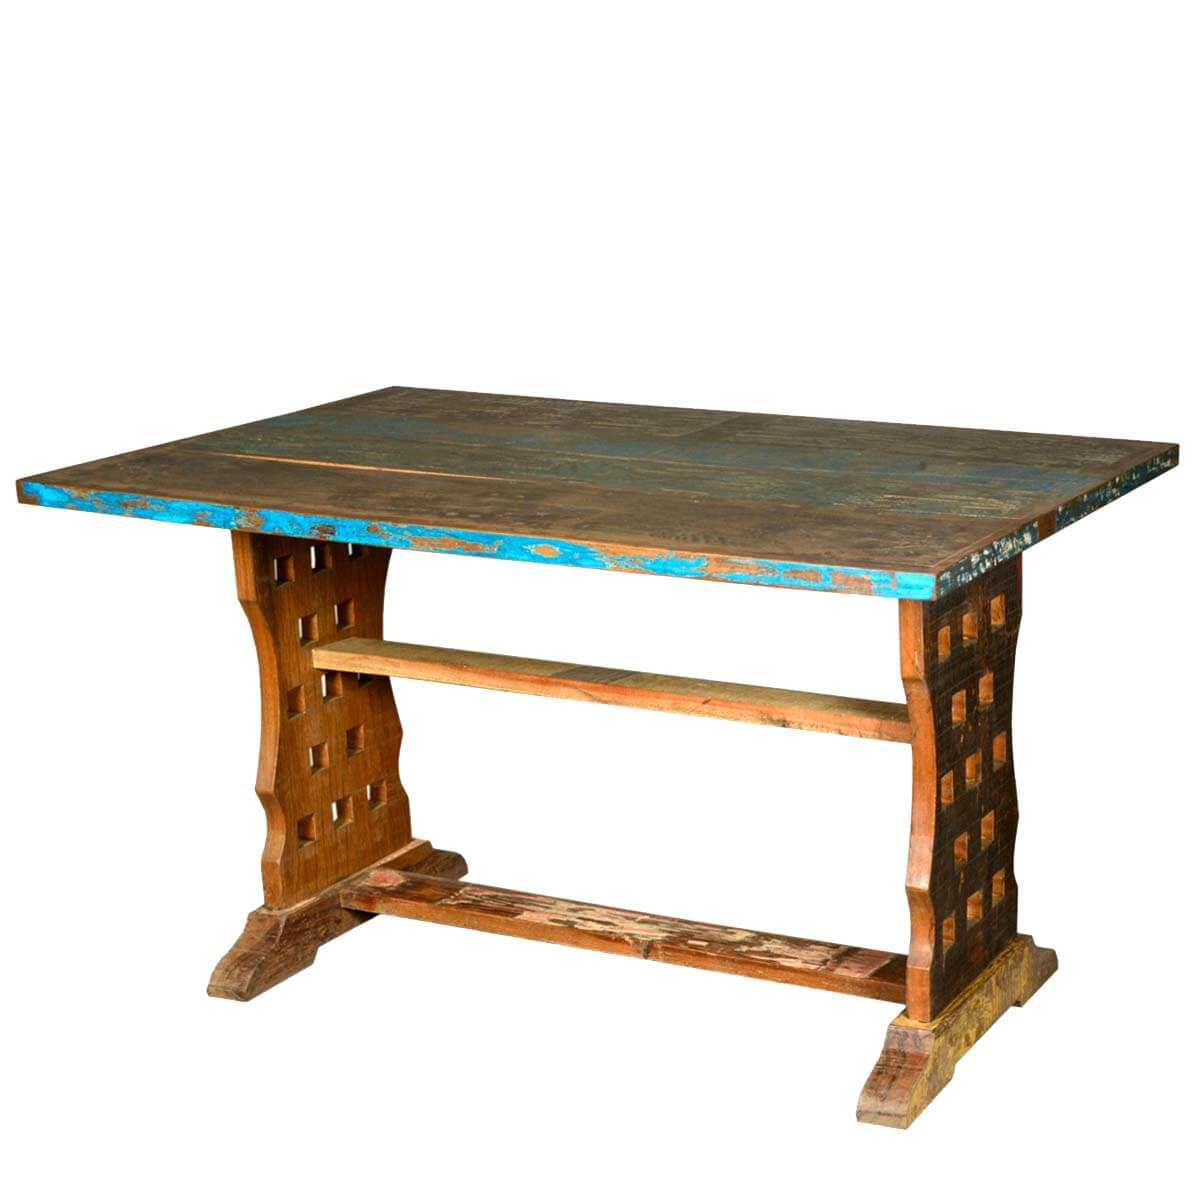 Pelham reclaimed wood rustic waffle sided trestle base for 3 sided dining room table